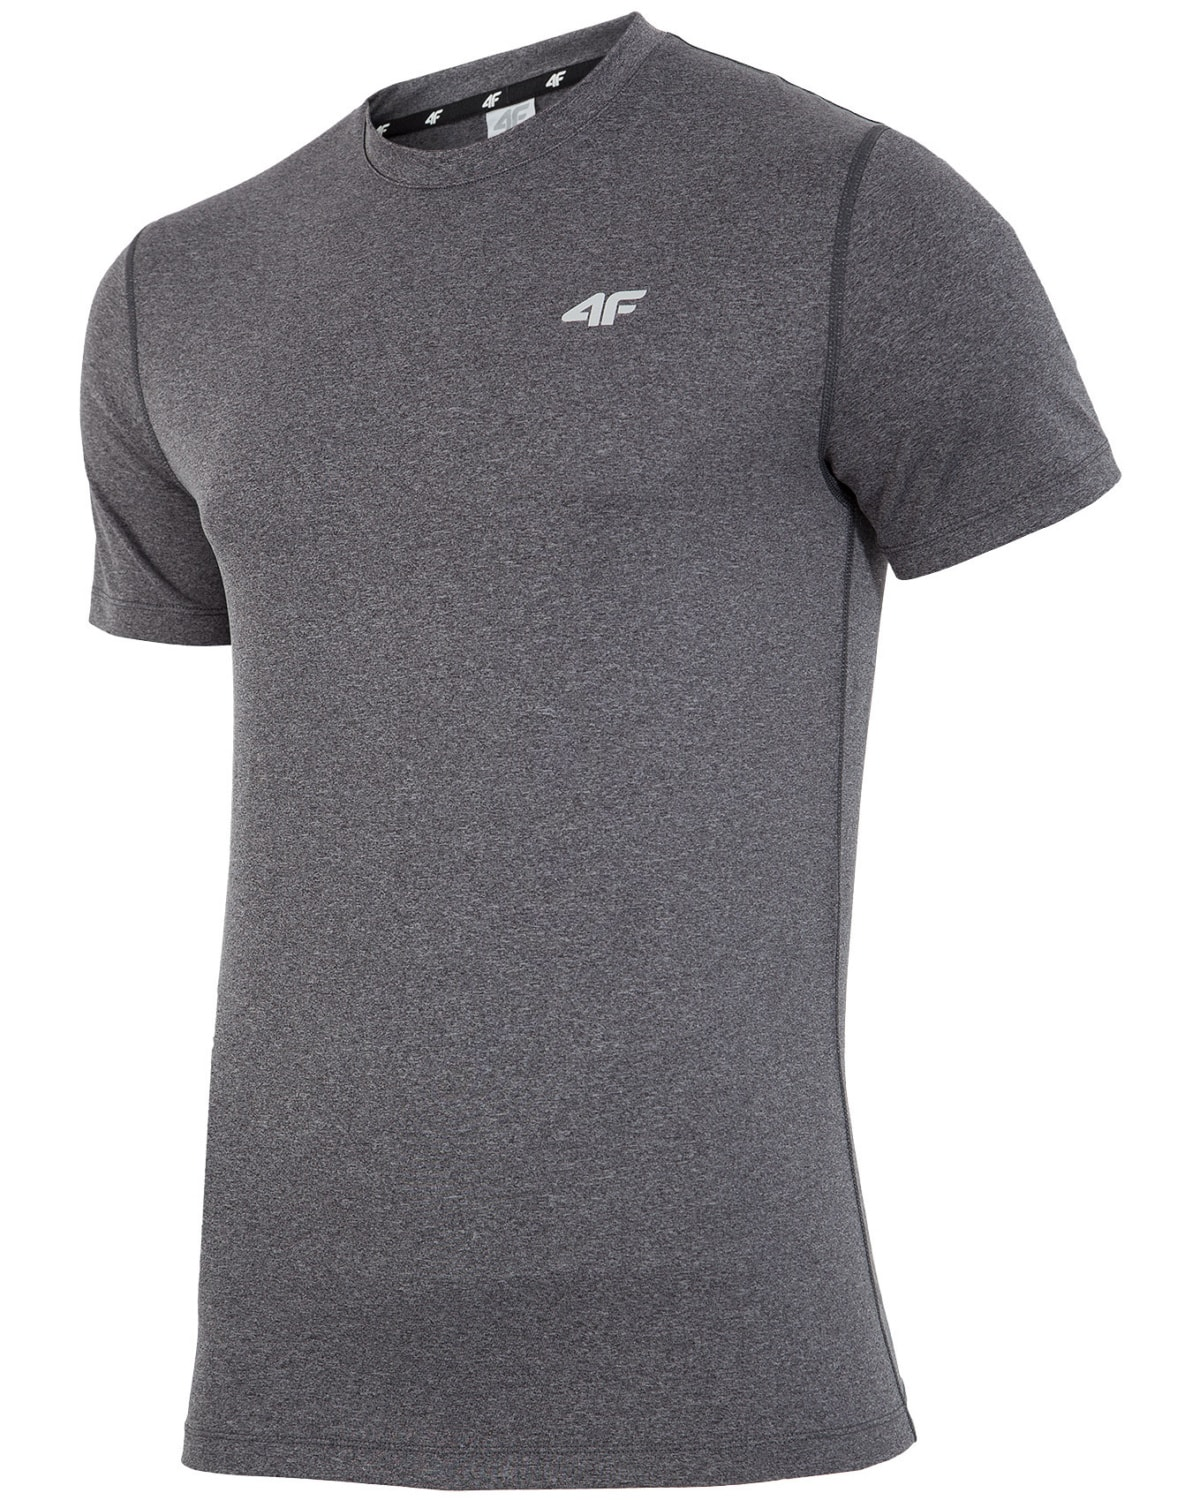 4F T-Shirt Fitness – Dark Gray Melange